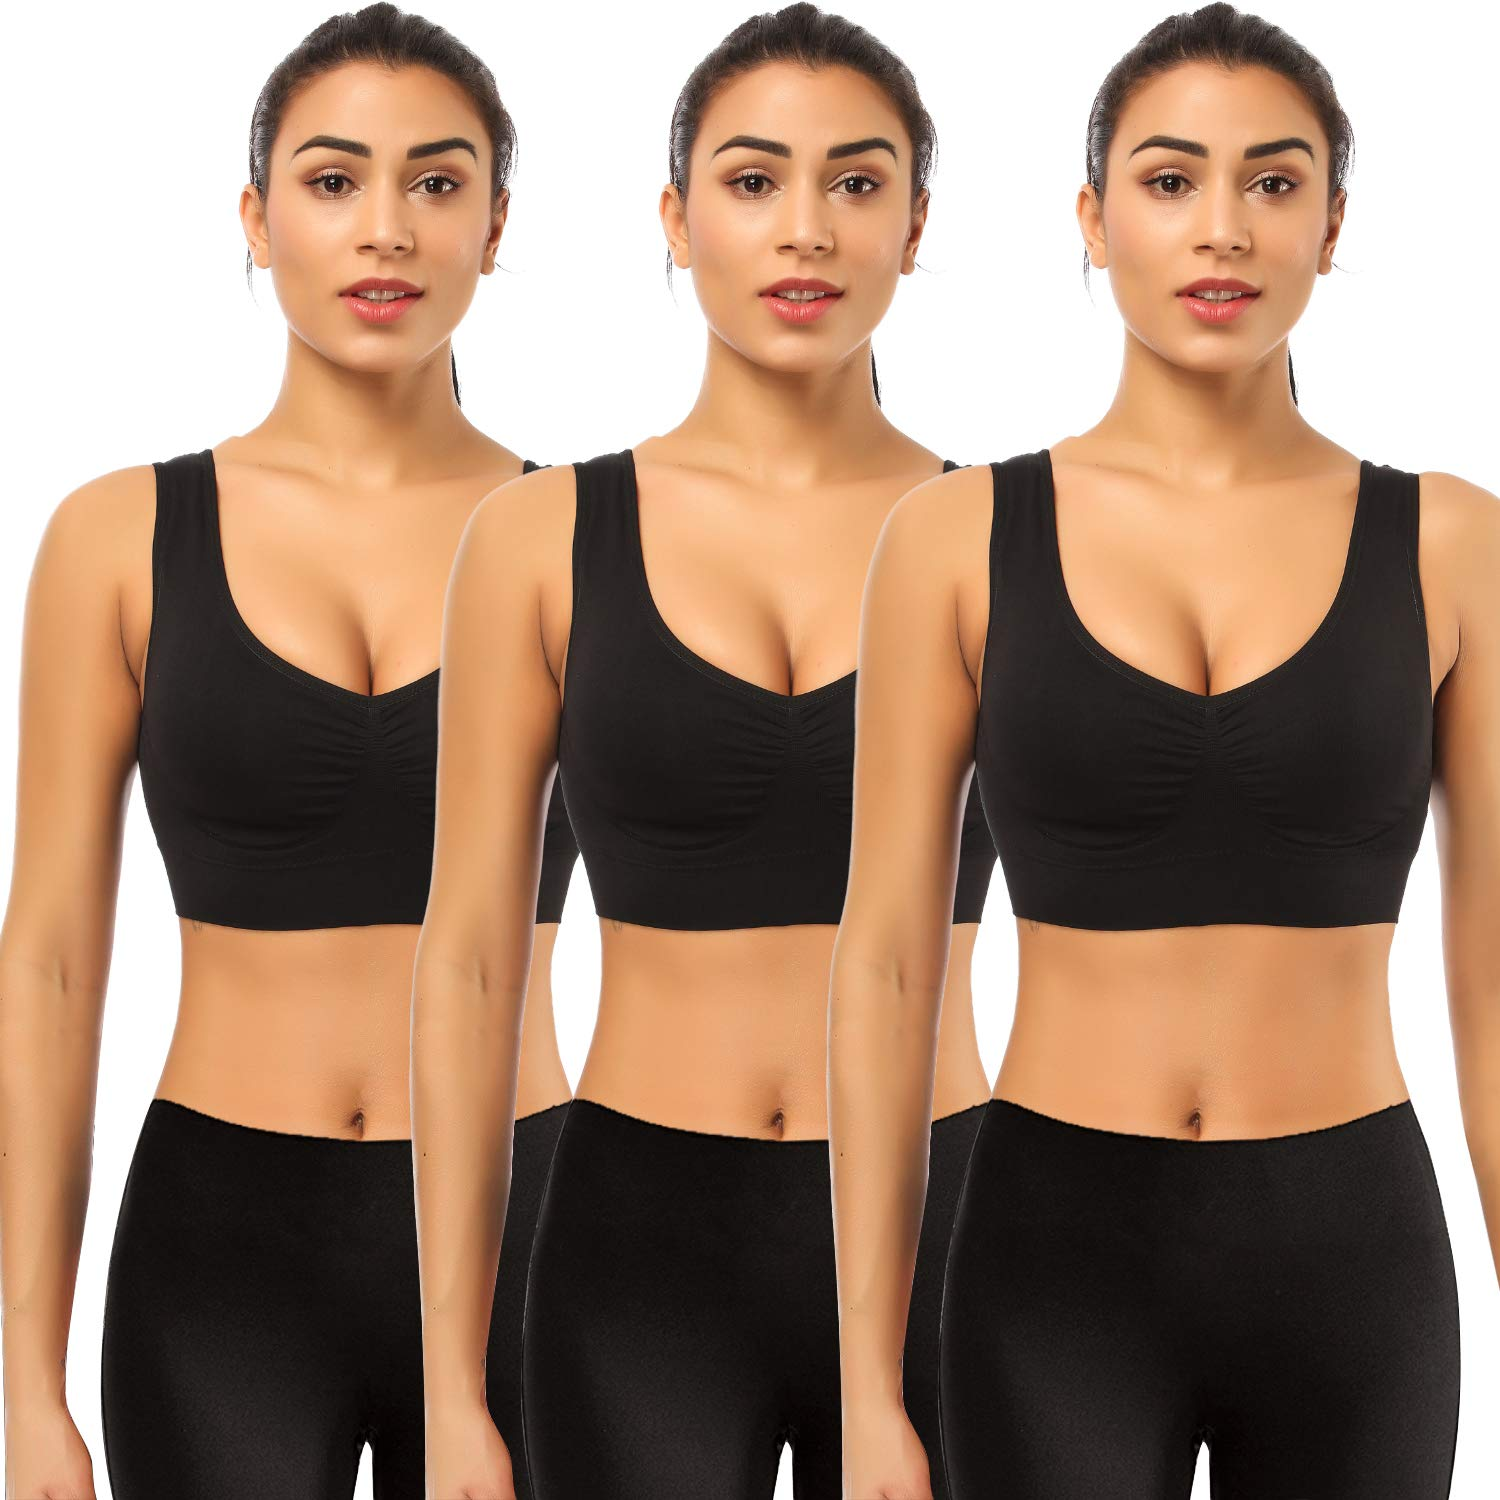 BESTENA Sports Bras for Women, 3 Pack Seamless Comfortable Yoga Bra with Removable Pads(Black,Small)